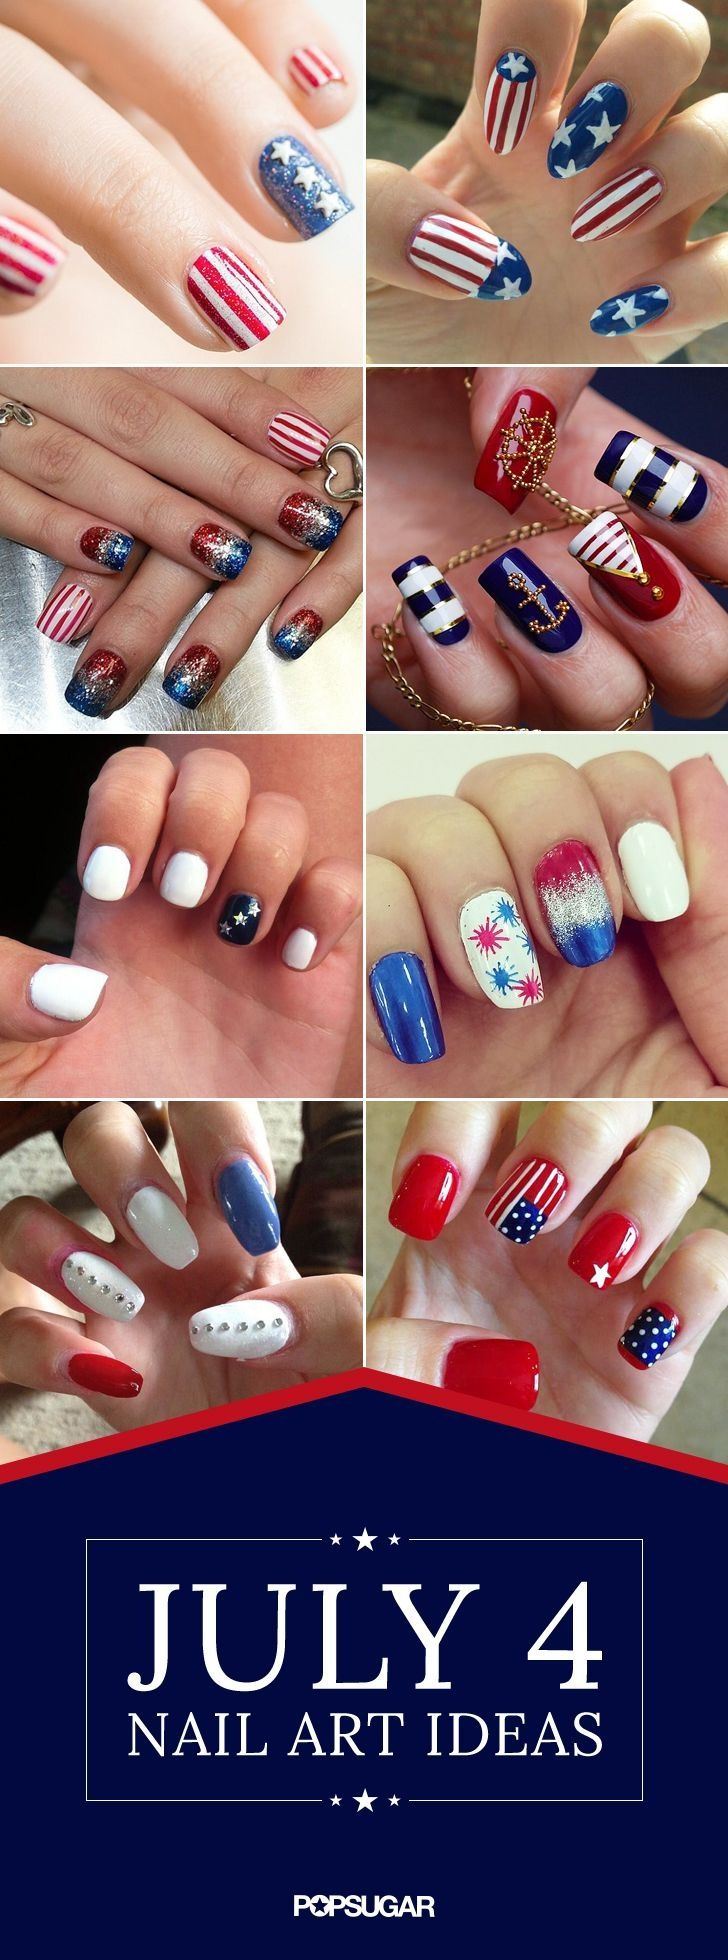 4 July nail ideas............